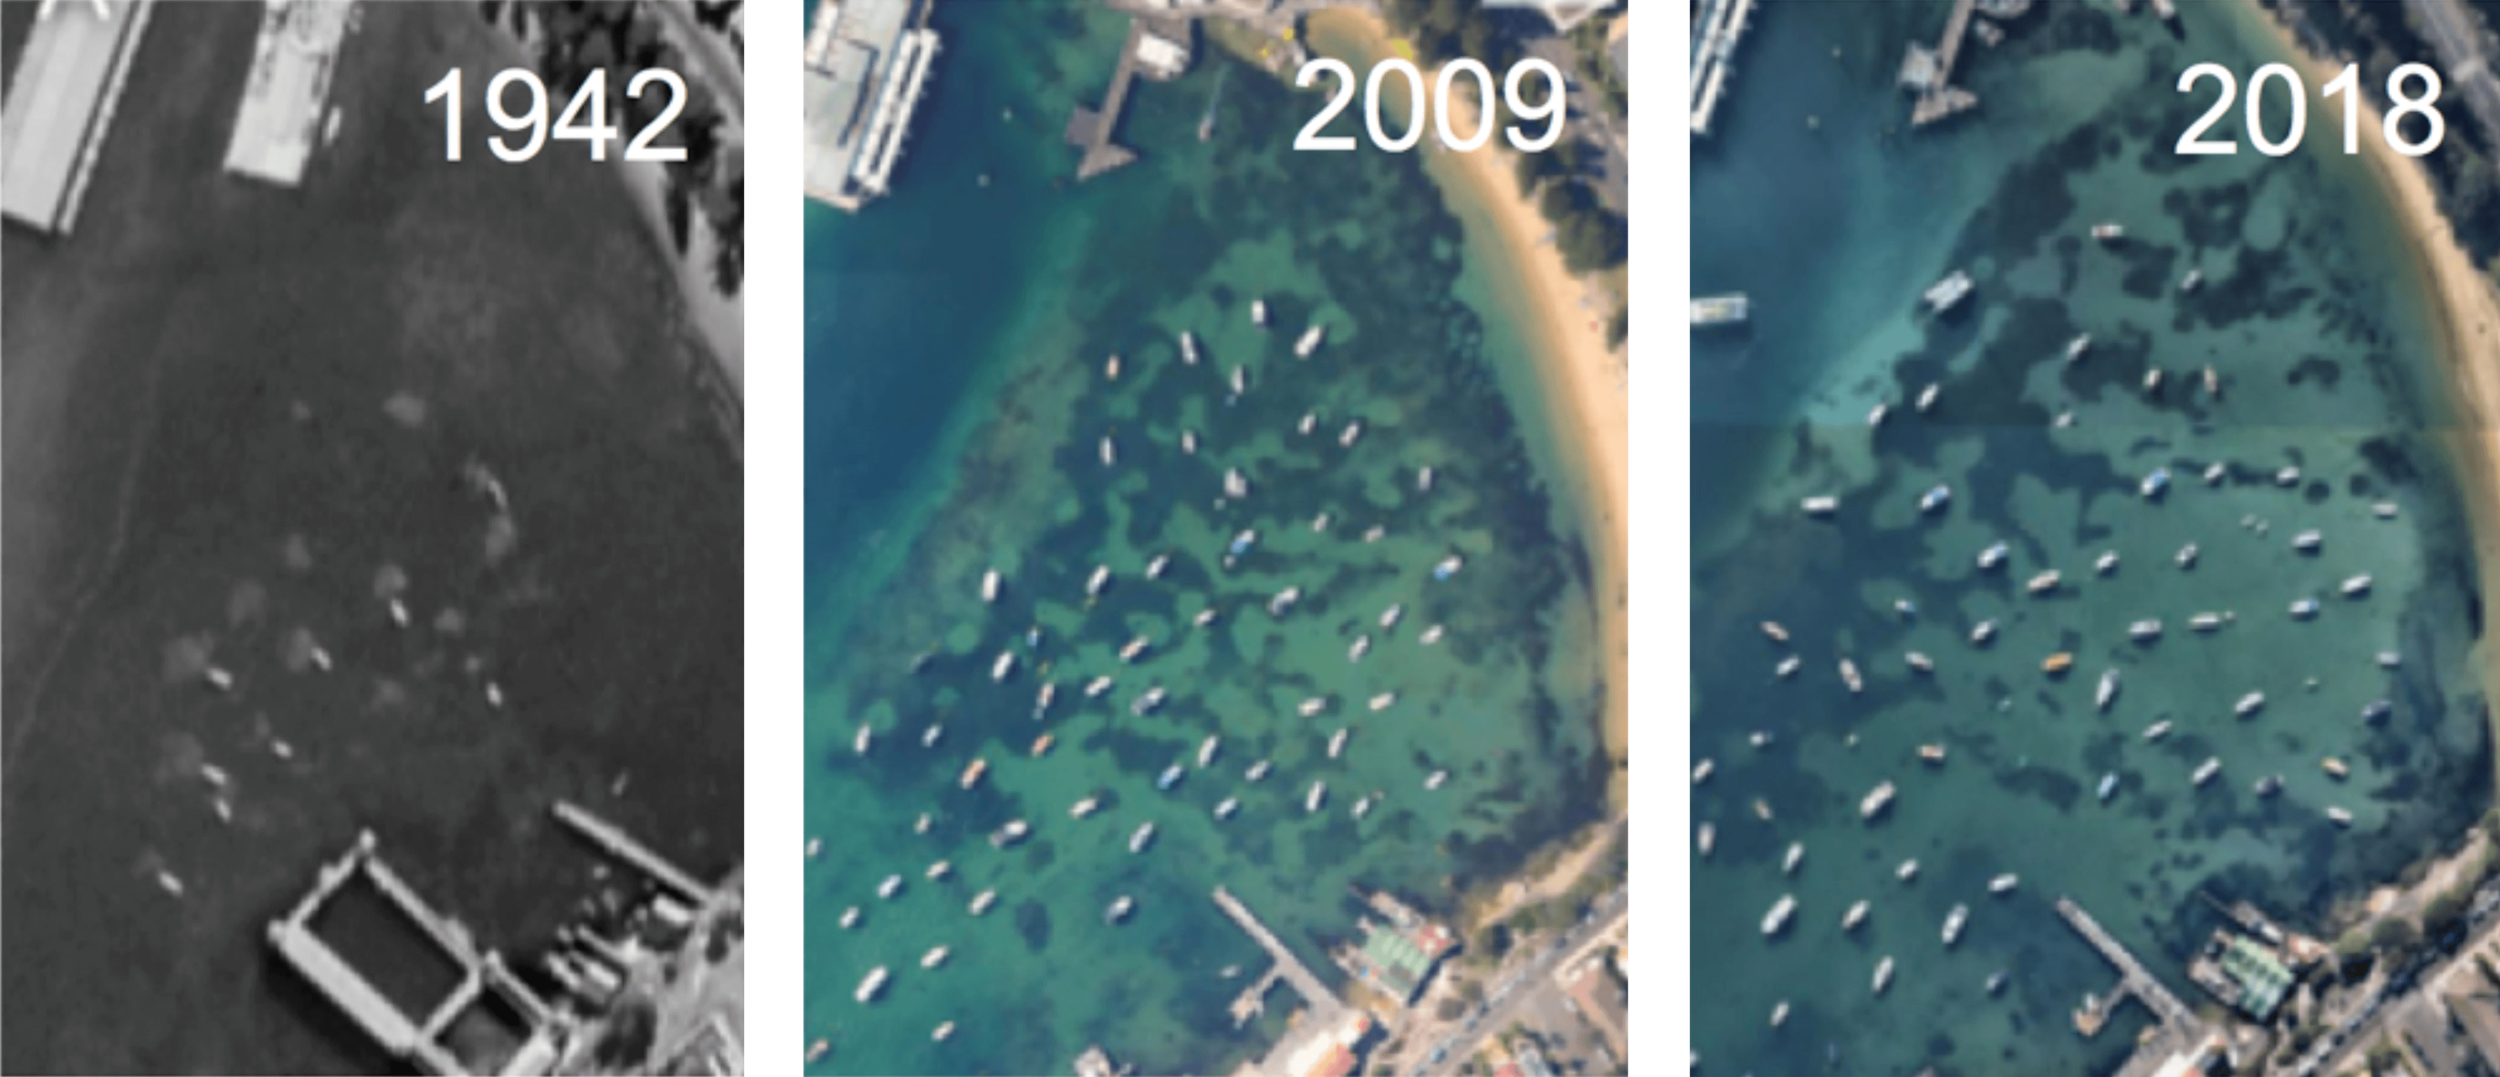 Photos: Aerial shots over Manly showing the presence of just a few boat mooring scars in 1942. By 2009, the remaining seagrass is visible as dark patches surrounded by some bare light-coloured sand where moorings scour the seafloor. Seagrass has continued to decline at an alarming rate in the last ten years.